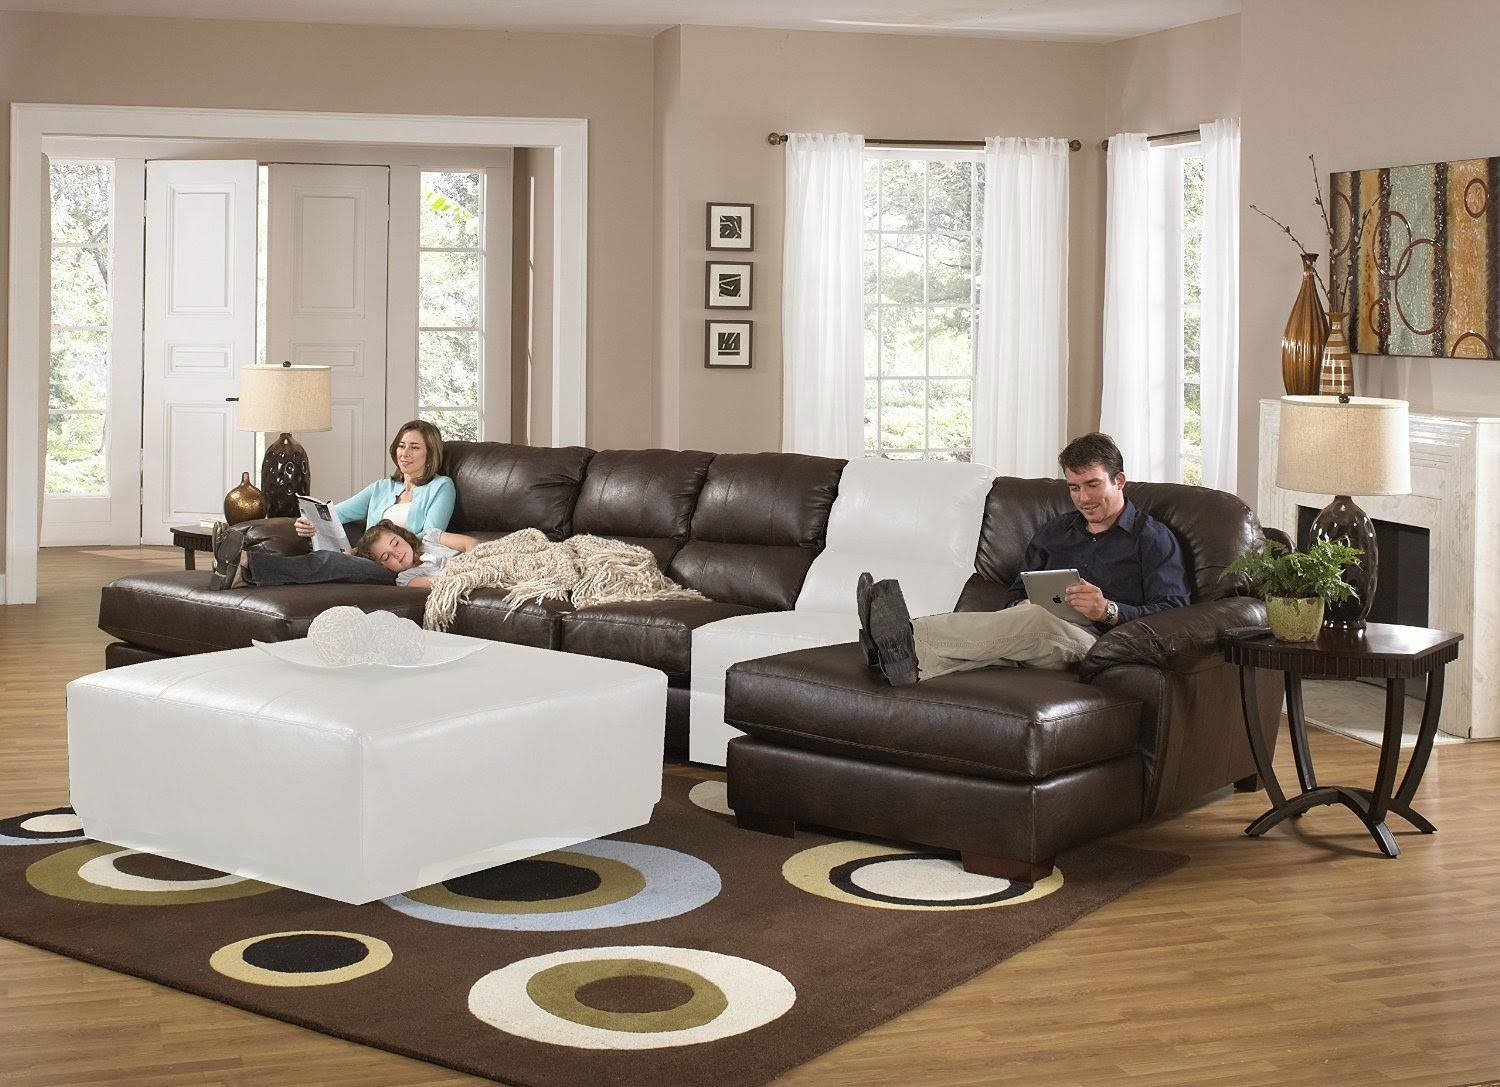 Excellent Sectional Sofas With Recliners And Sleeper 51 With throughout 6 Piece Leather Sectional Sofa (Image 16 of 30)